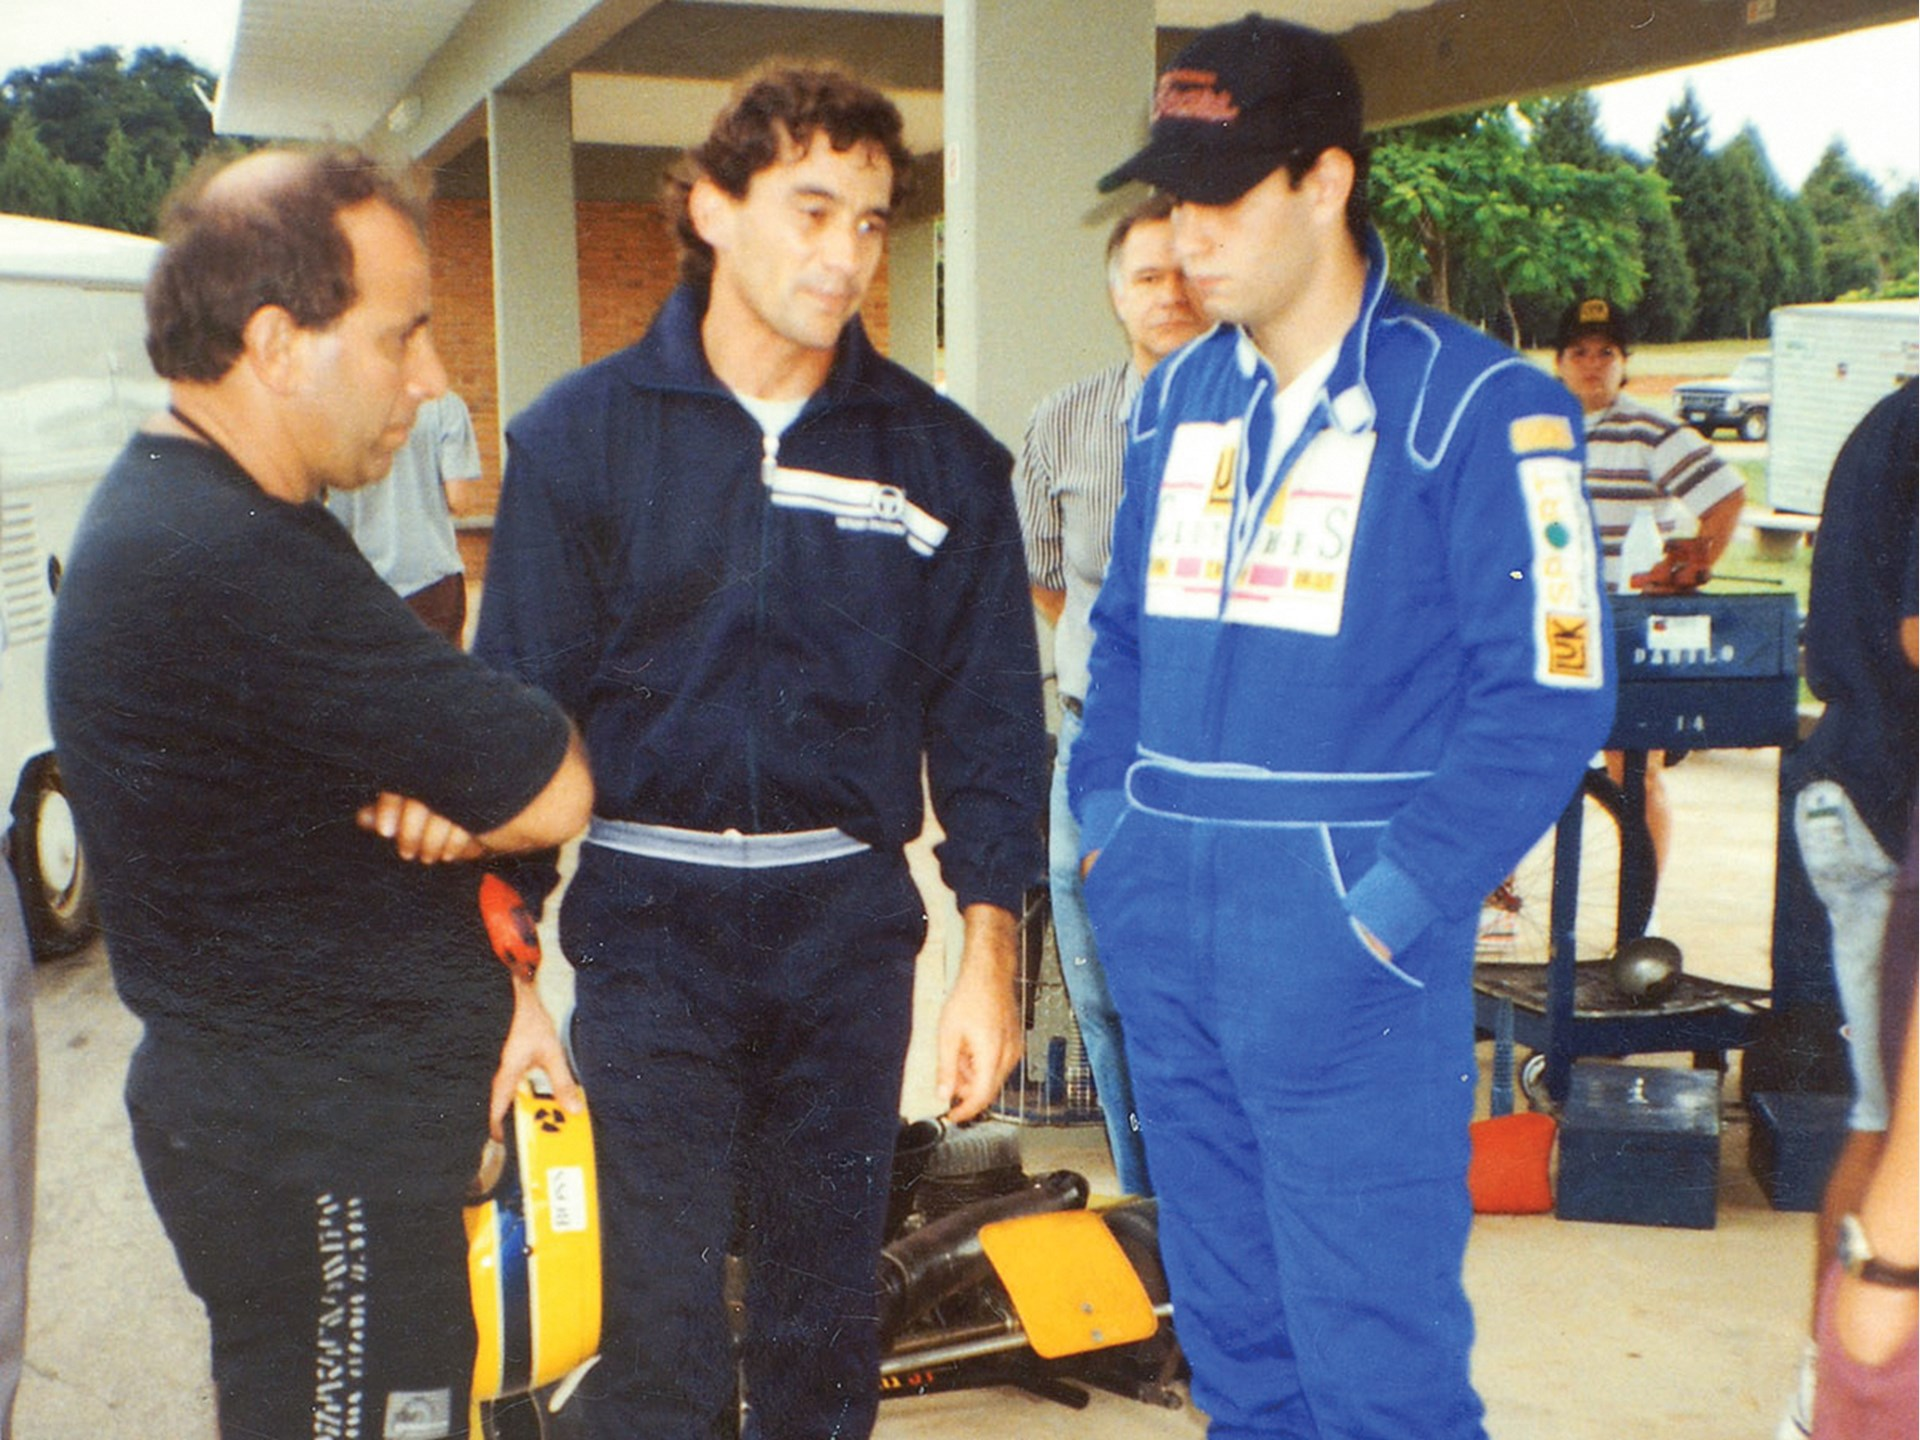 Senna with friends after driving the kart on his track.